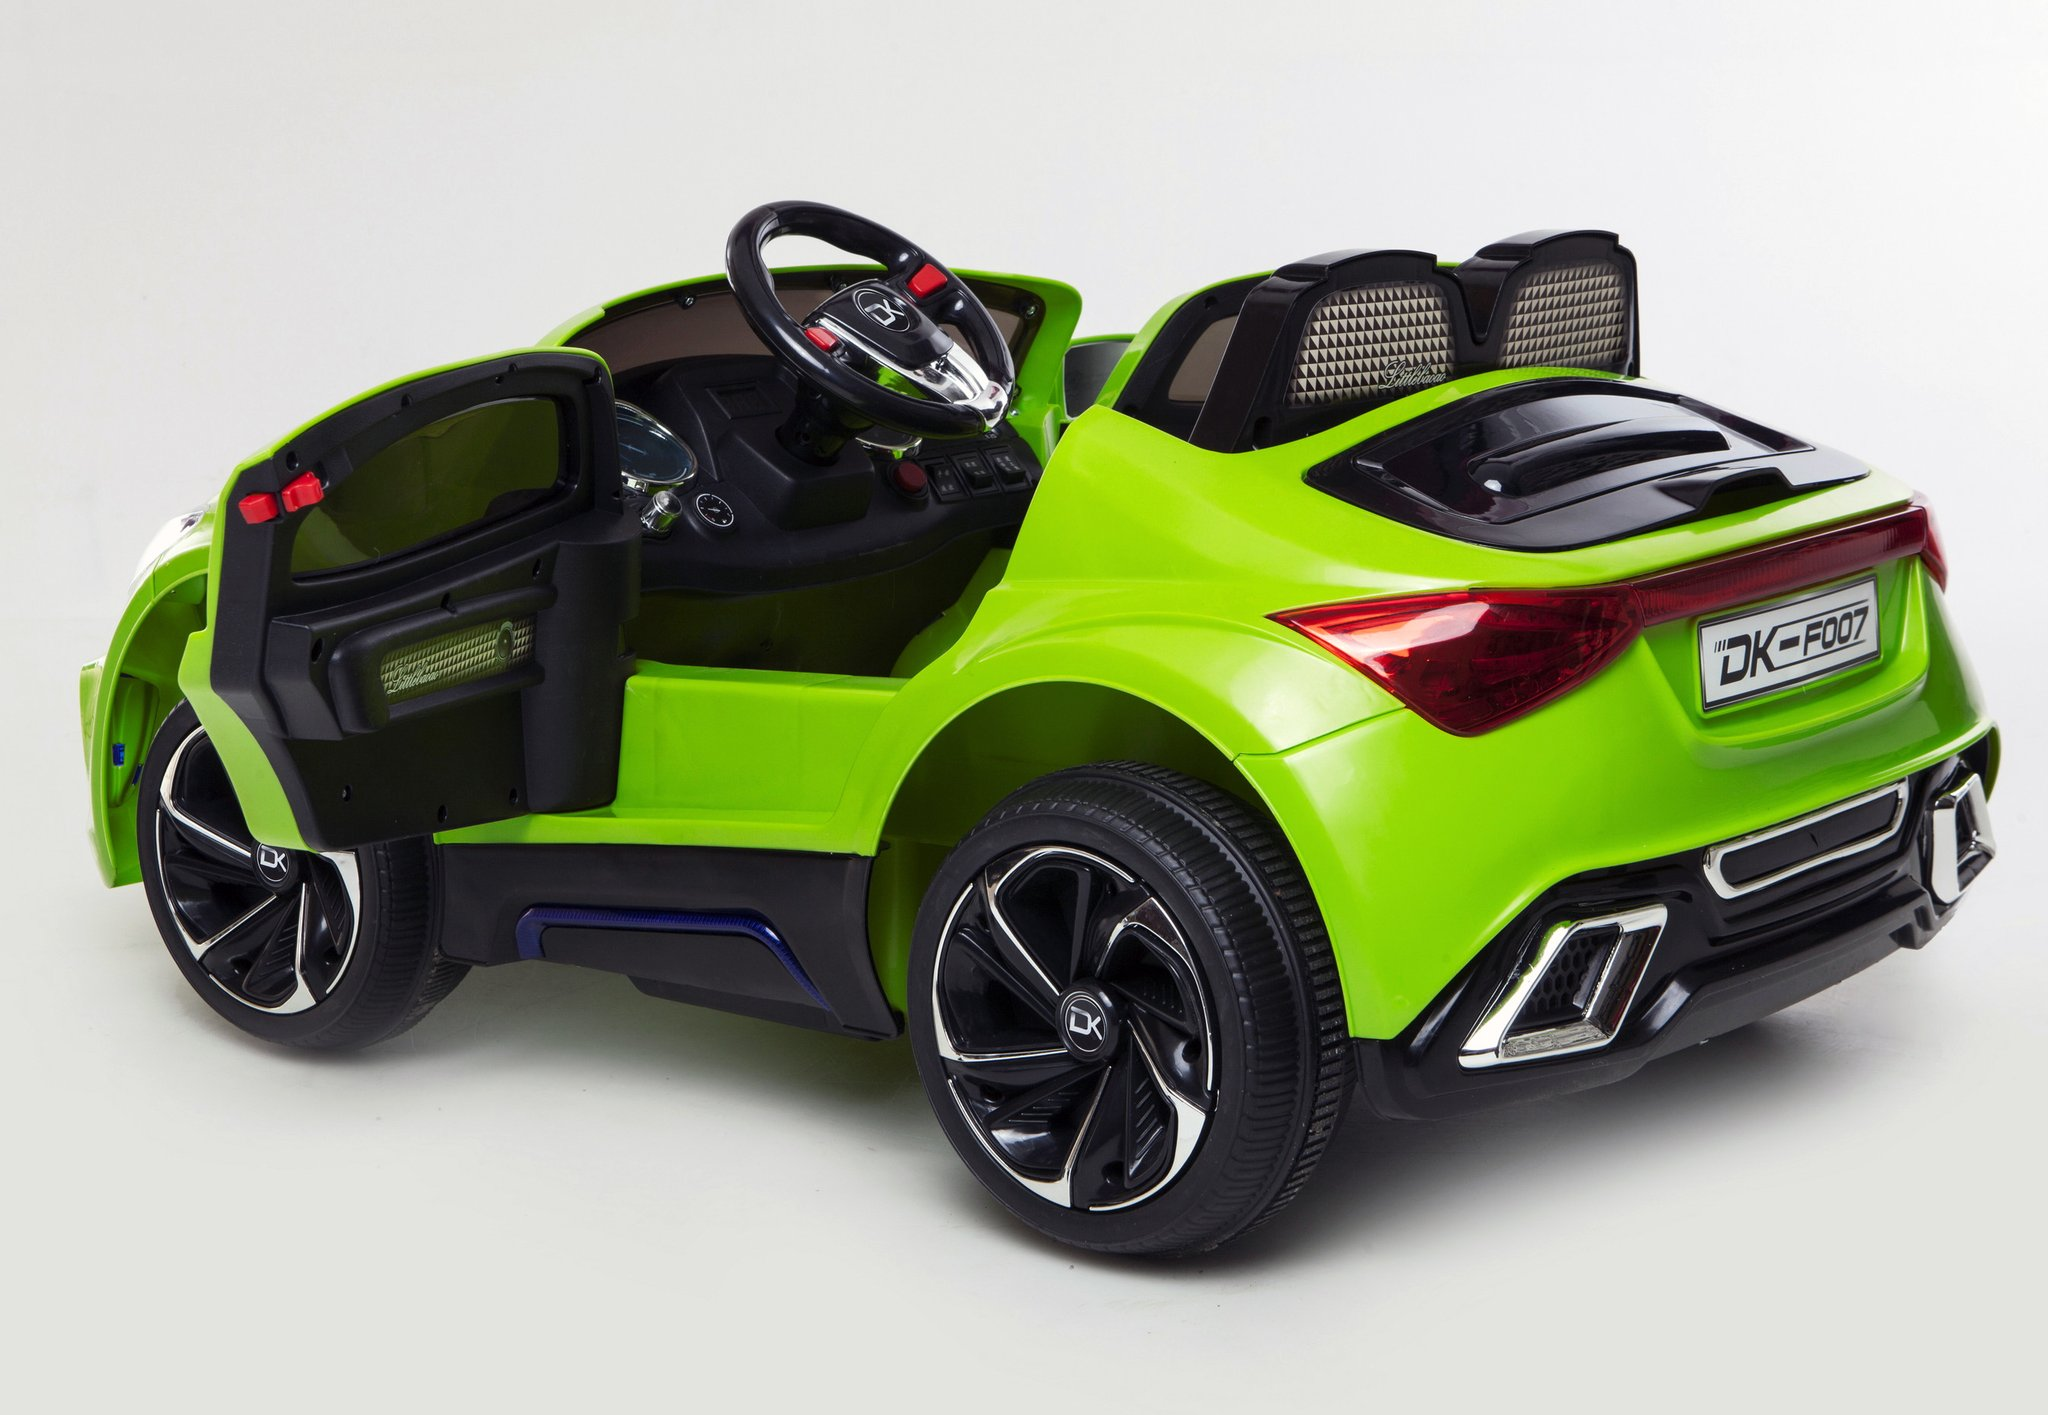 Ride On toy Car Best Of 12v Battery Powered Kids Electric Ride On toy Car Model F007